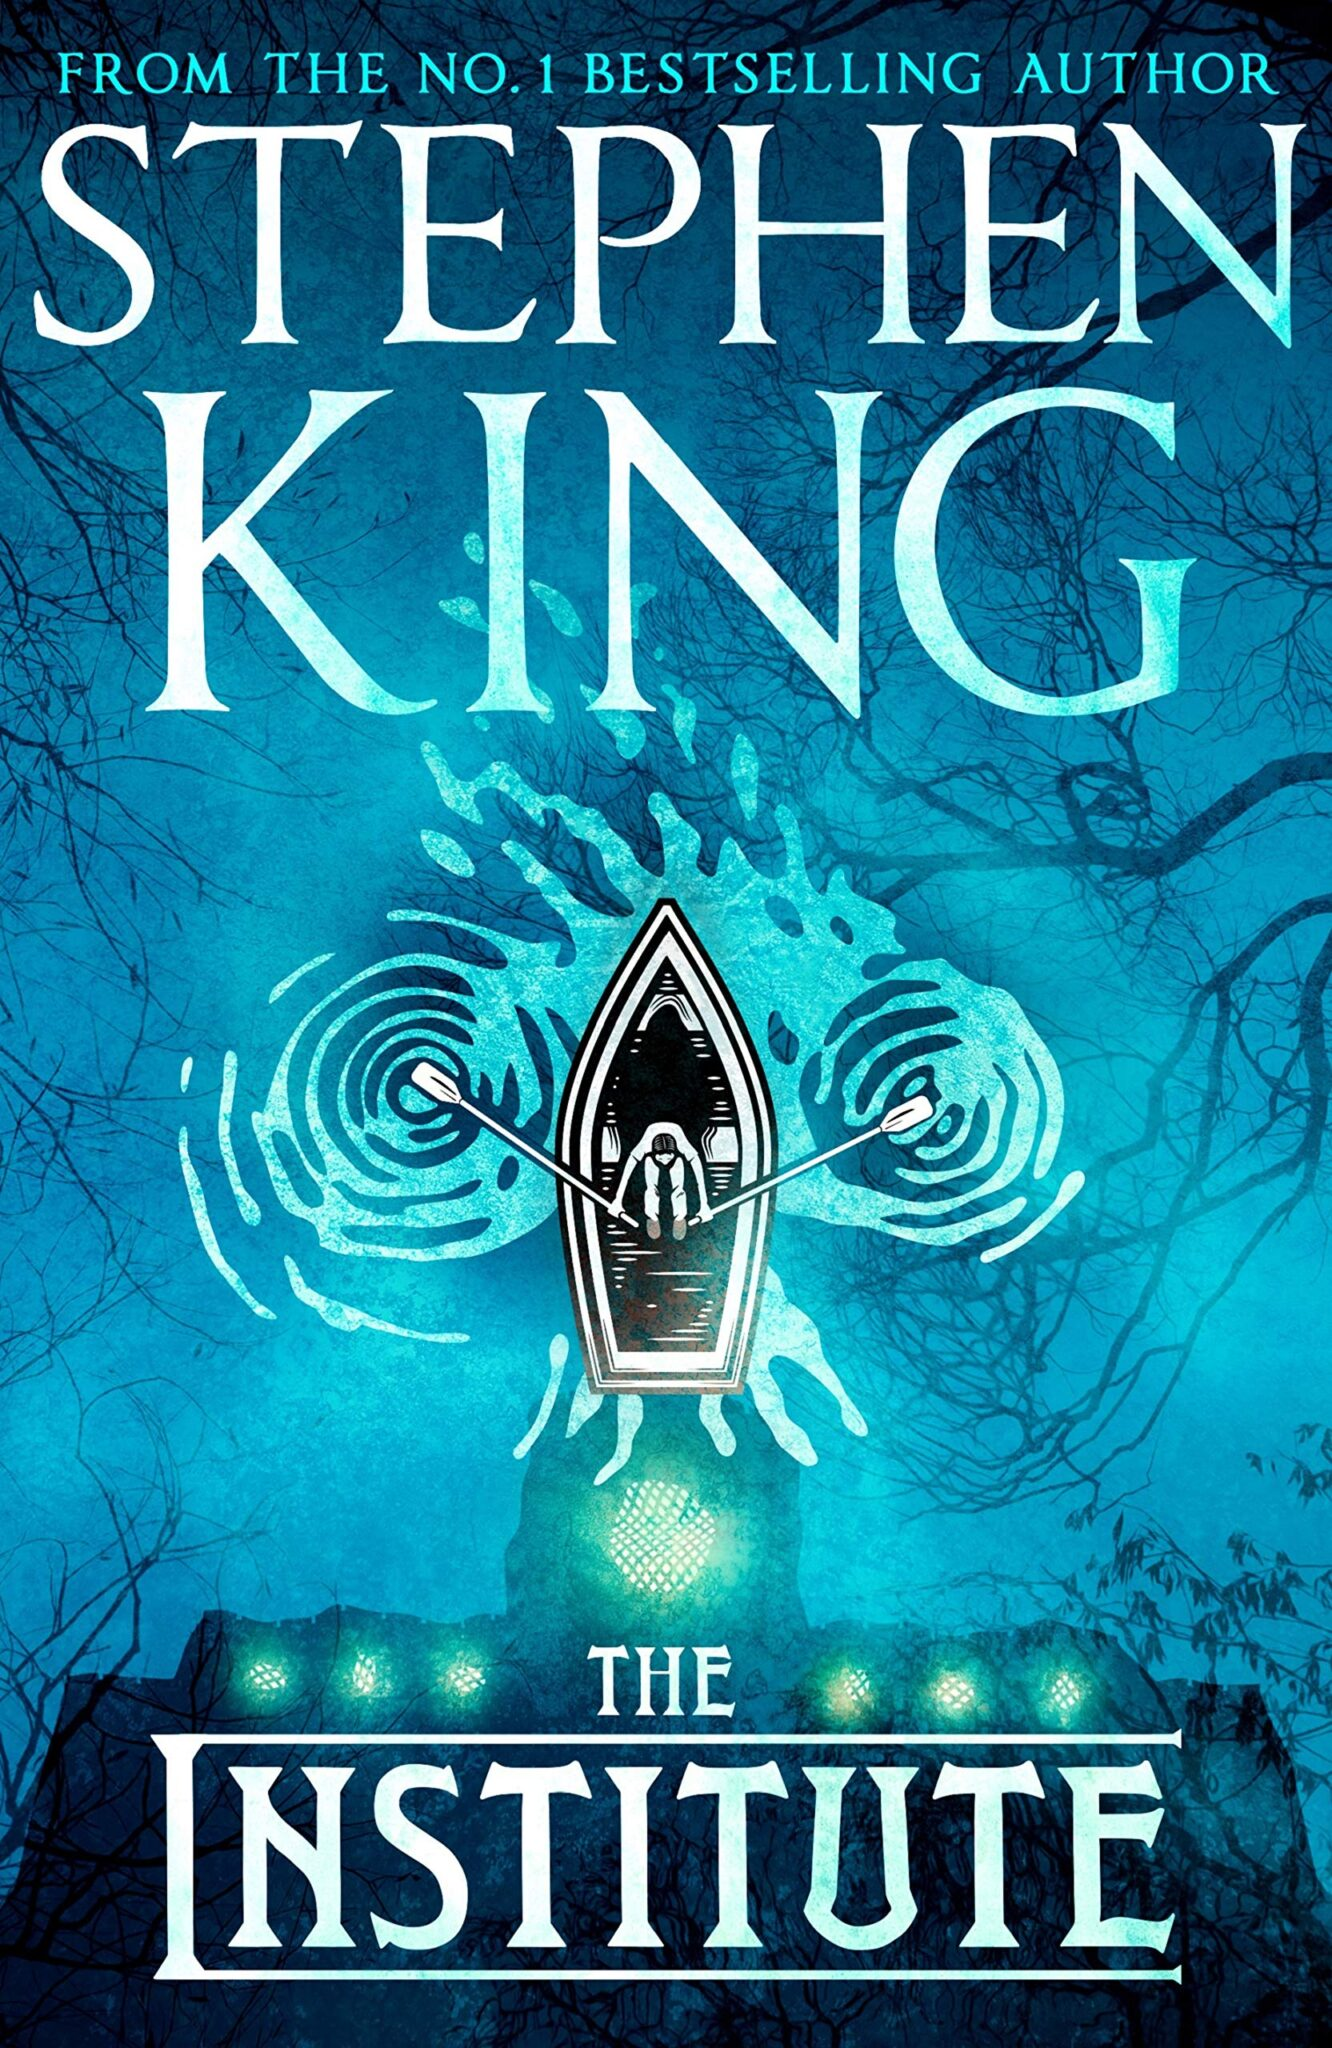 Stephen King The Institute UK cover